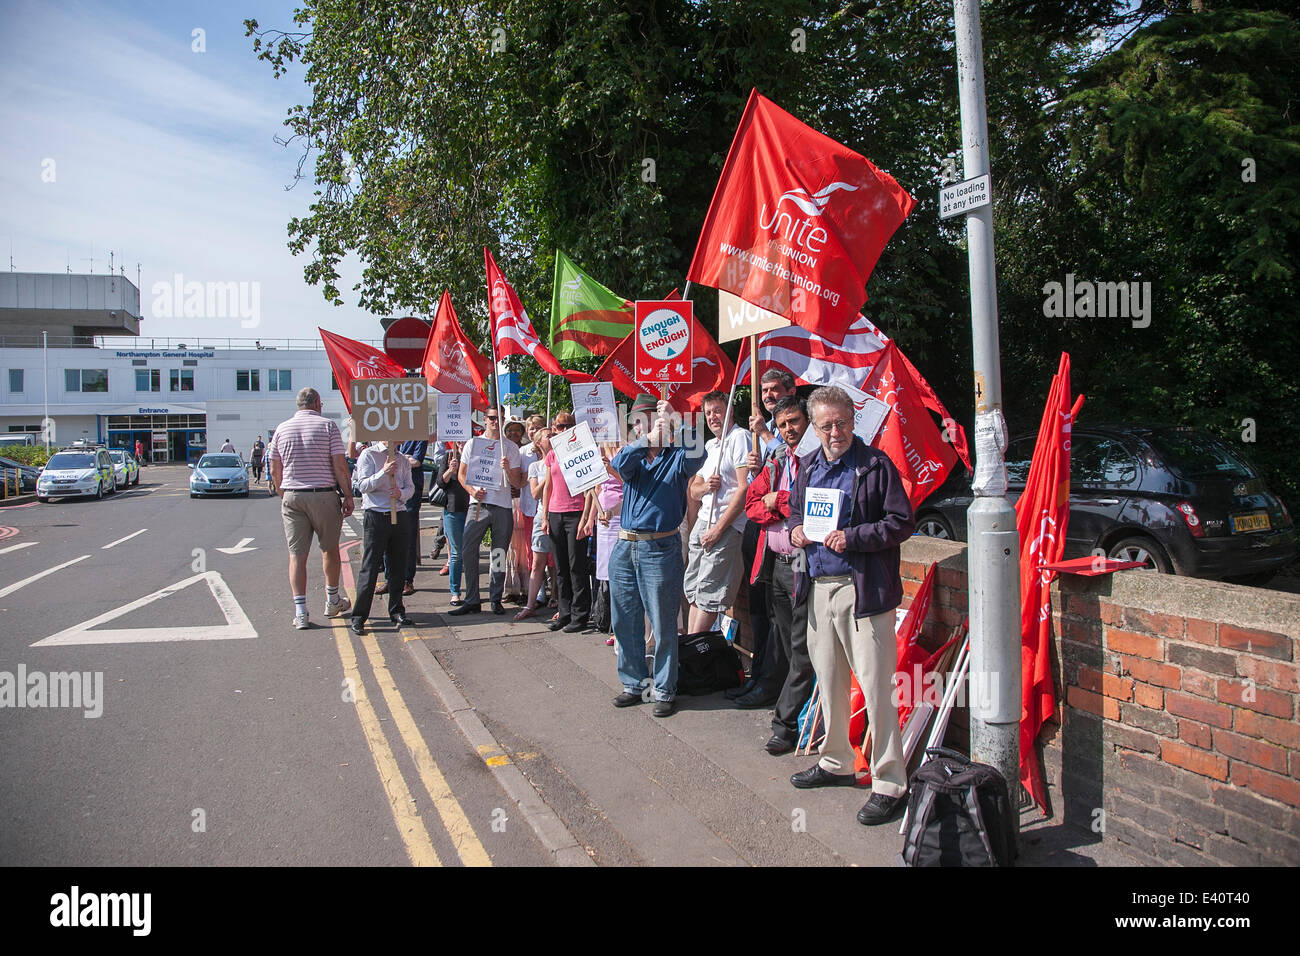 Northampton General Hospital, Northampton, UK. 2nd July 2014. Lockout of 78 Biomedical scientists day 6, described - Stock Image